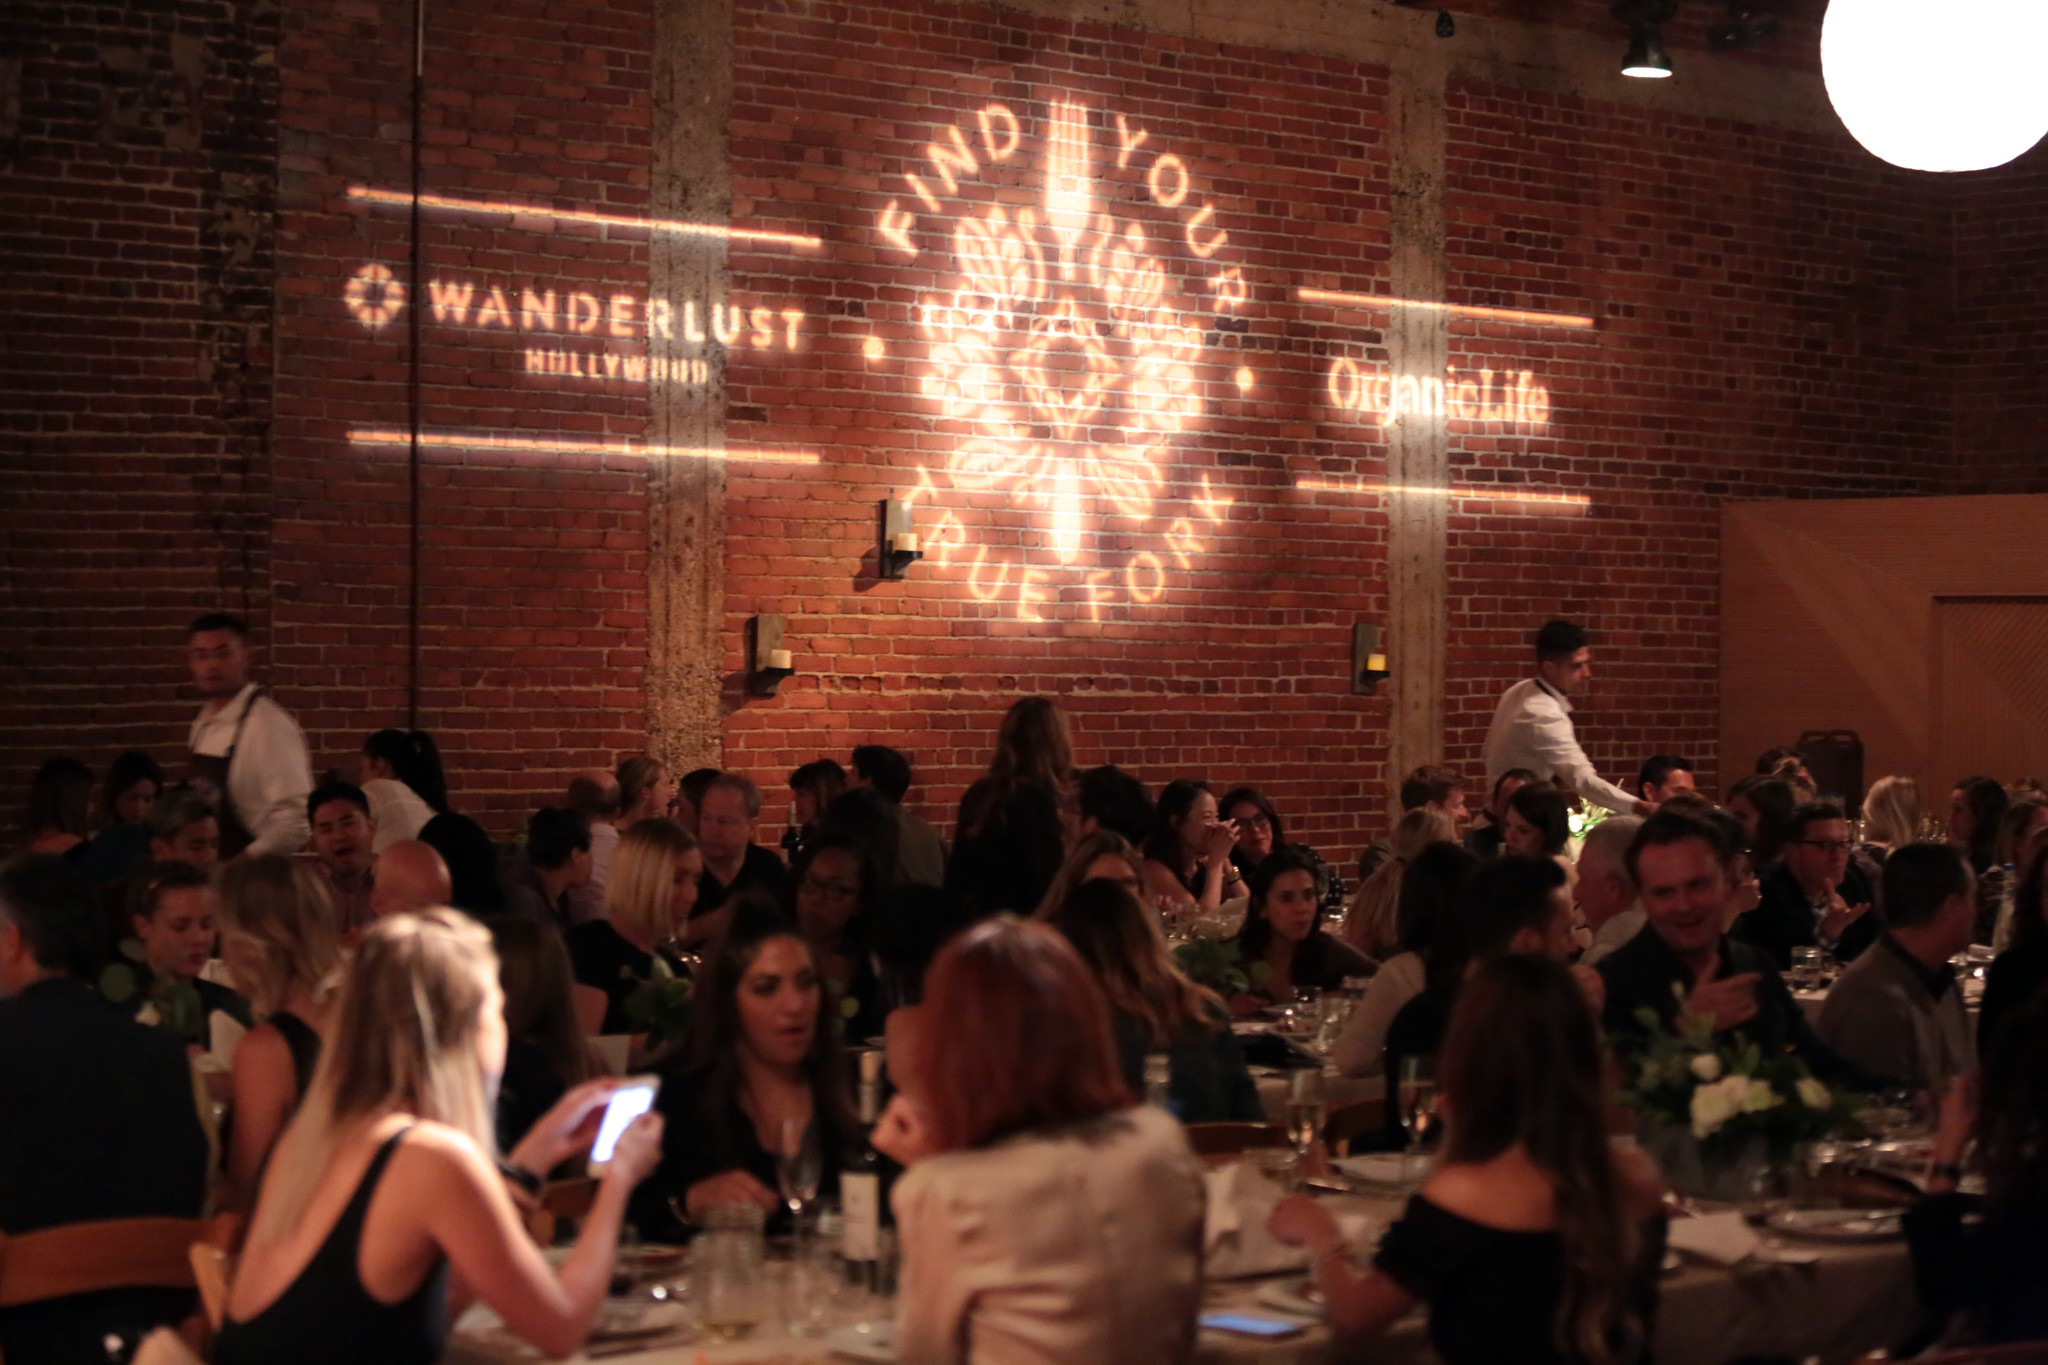 Wanderlust's Find Your True Fork Dinner. Credit: Elli Lauren / Wanderlust Hollywood